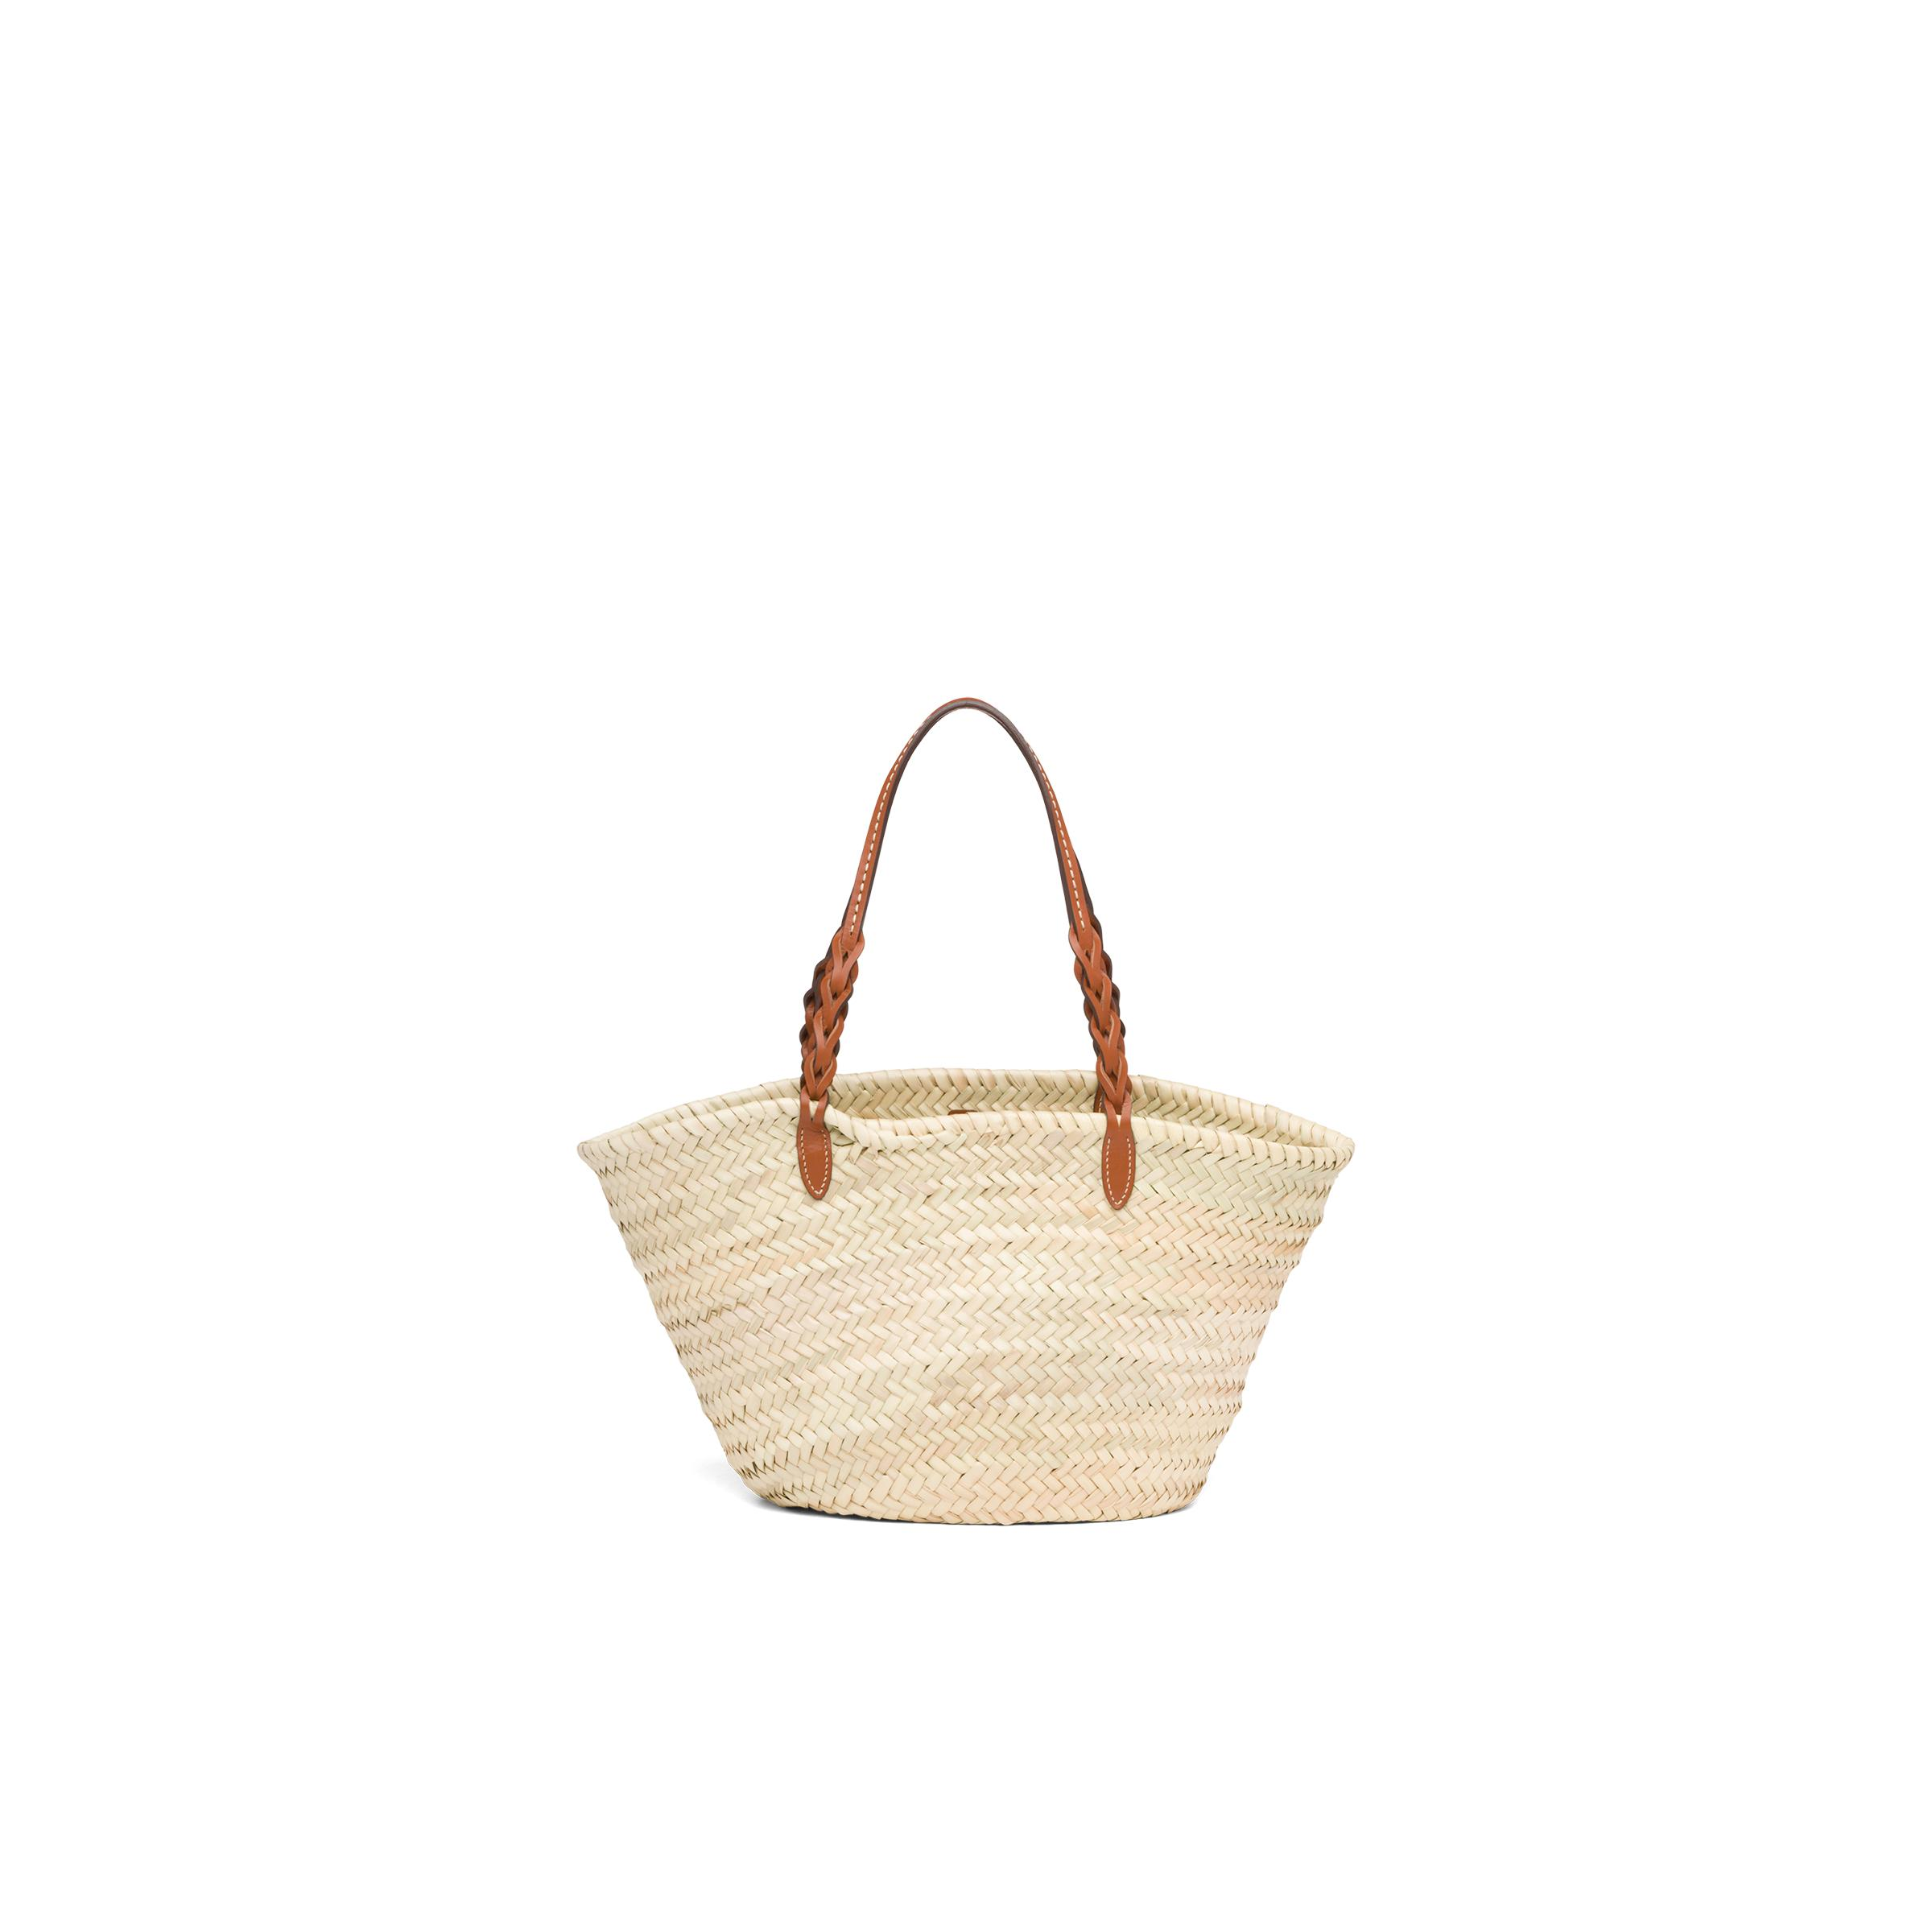 Woven Palm And Leather Tote Women Beige/cognac 3